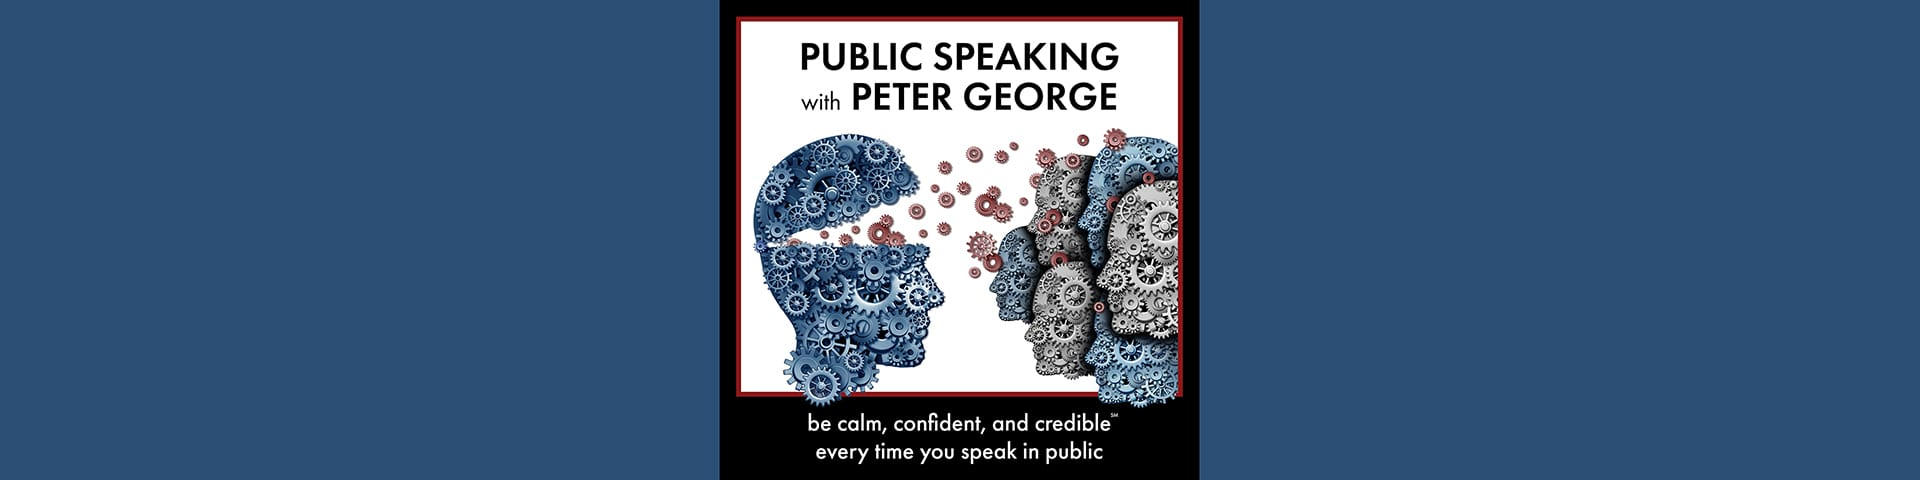 public speaking podcast